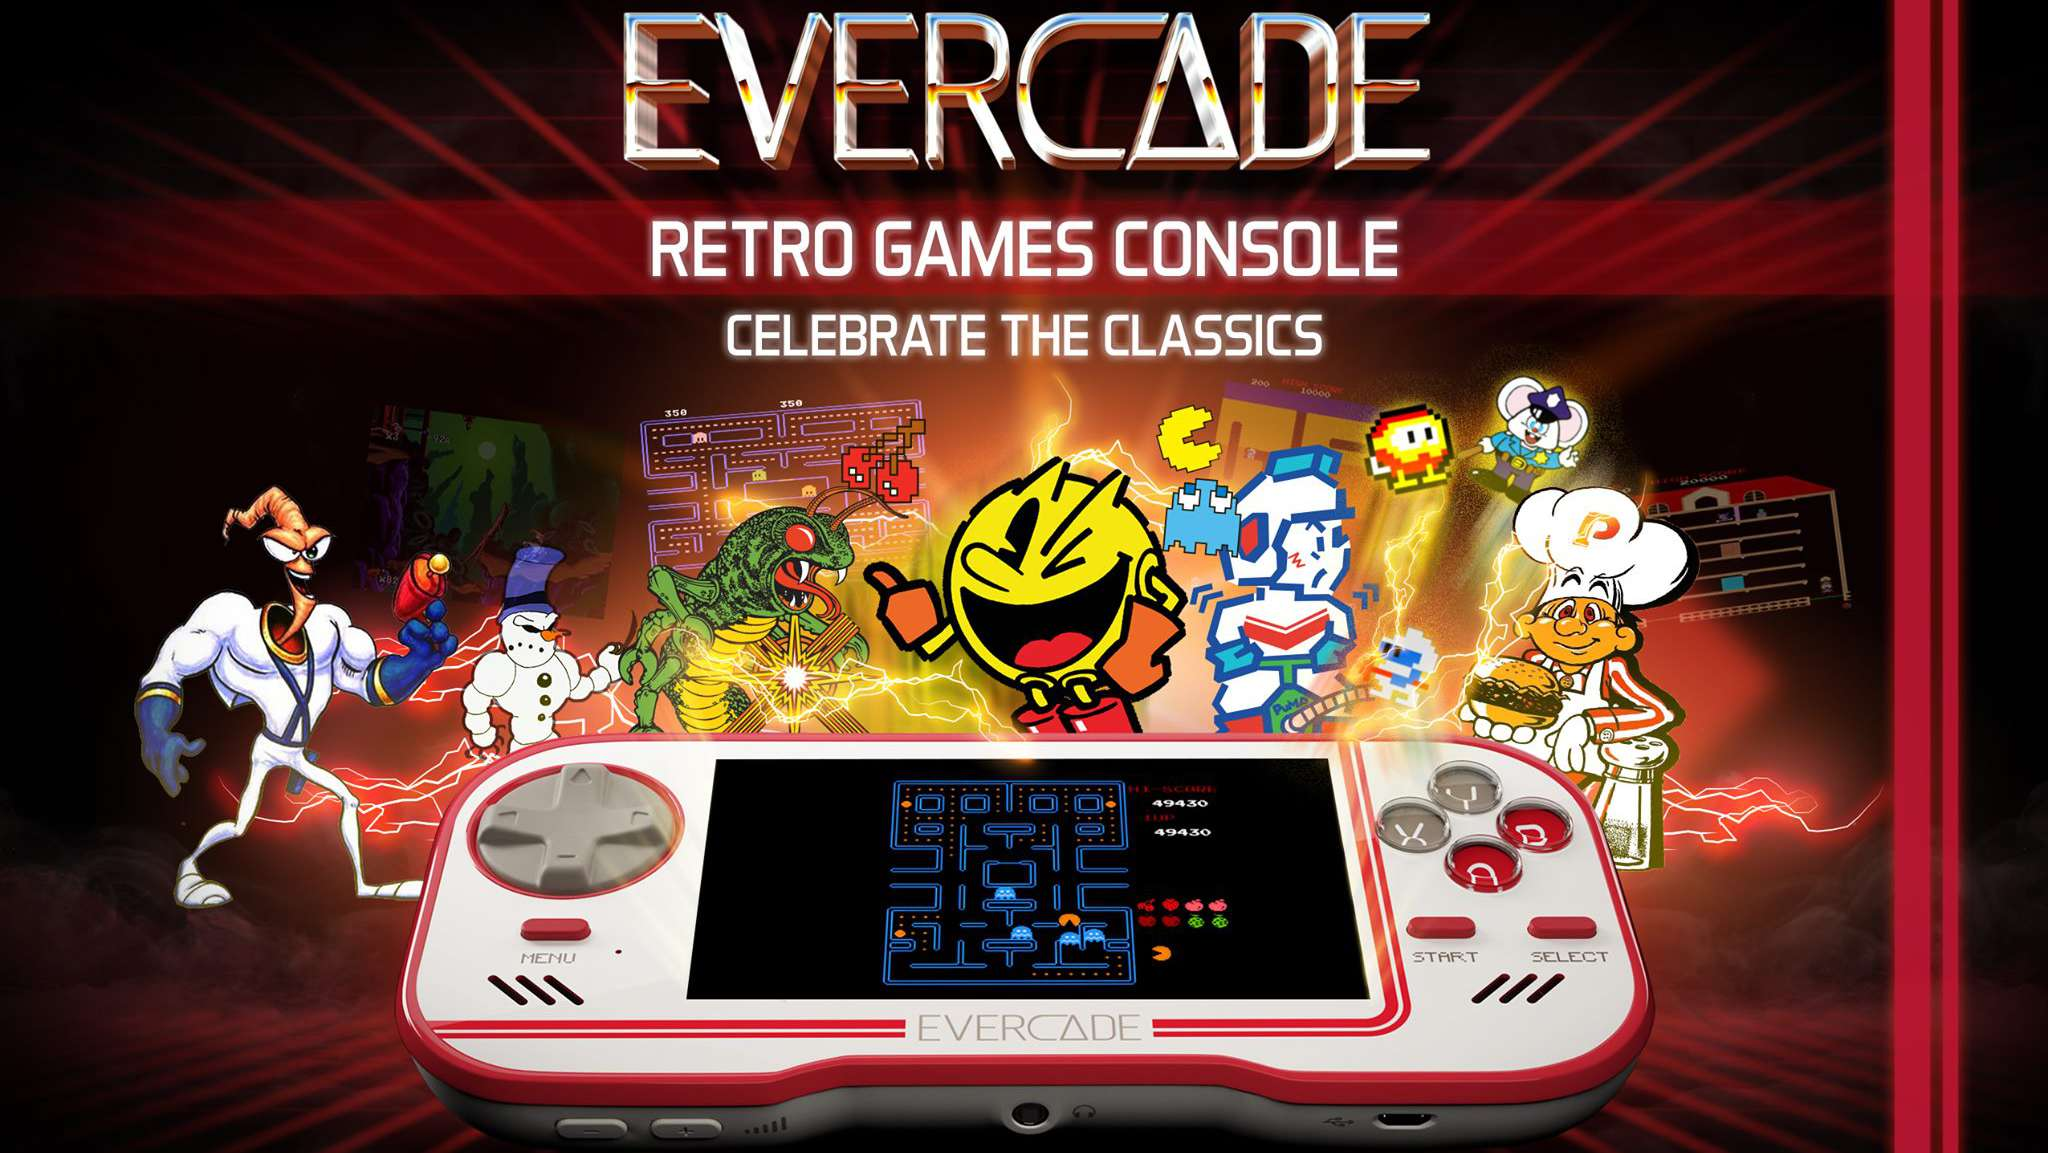 Five reasons to be excited about the Evercade handheld